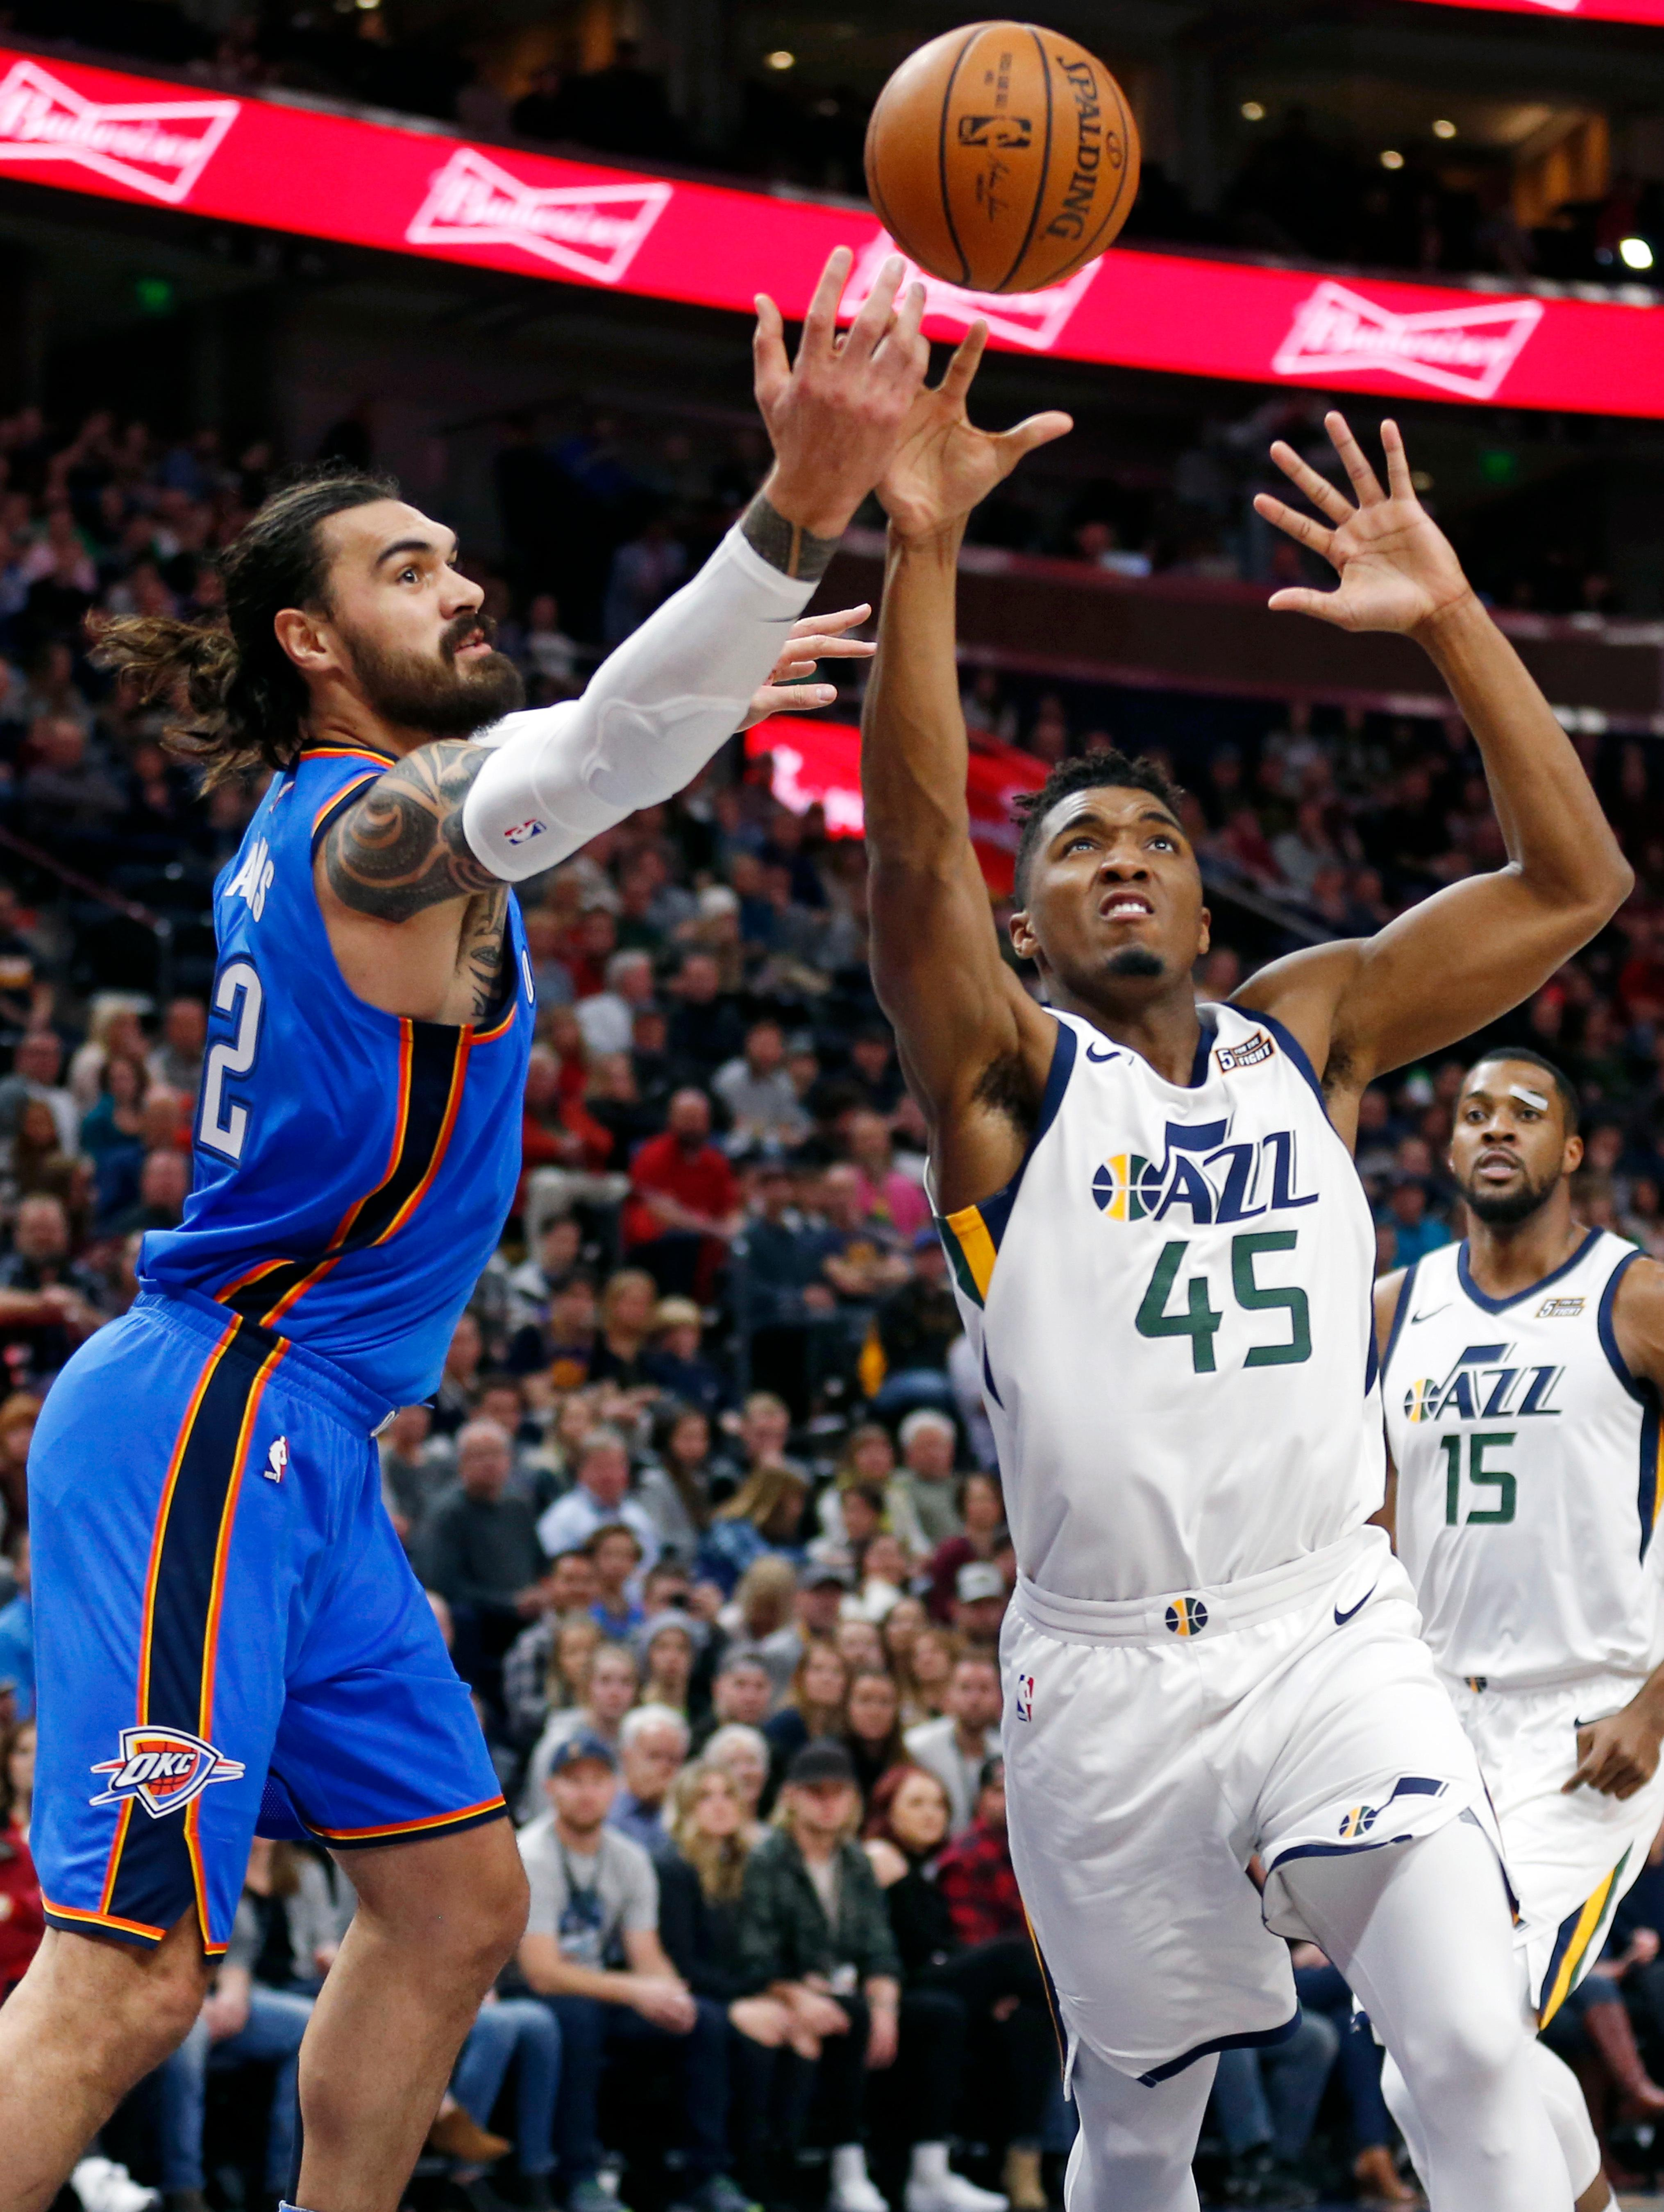 Utah Jazz guard Donovan Mitchell (45) and Oklahoma City Thunder center Steven Adams, left, battle for a rebound in the first half during an NBA basketball game Saturday, Dec. 23, 2017, in Salt Lake City. (AP Photo/Rick Bowmer)